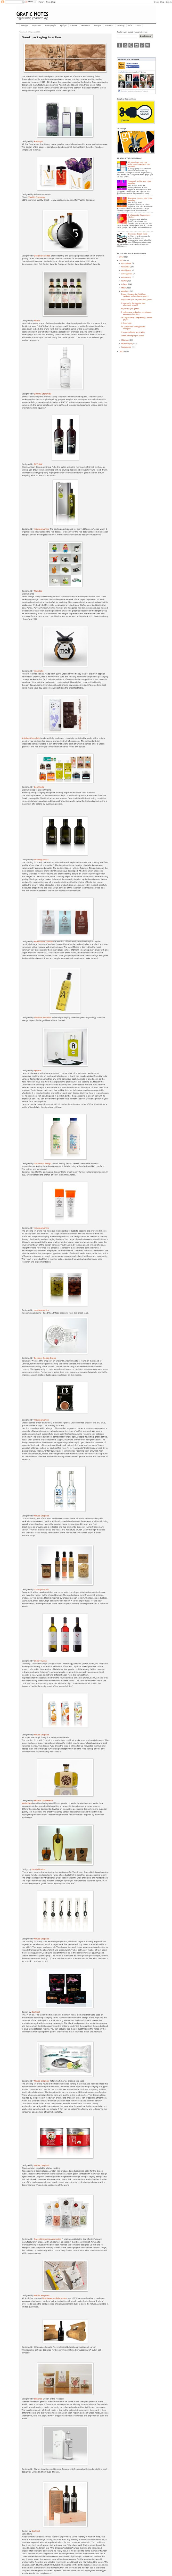 Website'http%3A%2F%2Fgraficnotes.blogspot.gr%2F2013%2F04%2Fgreek-packaging-in-action.html' snapped on Page2images!